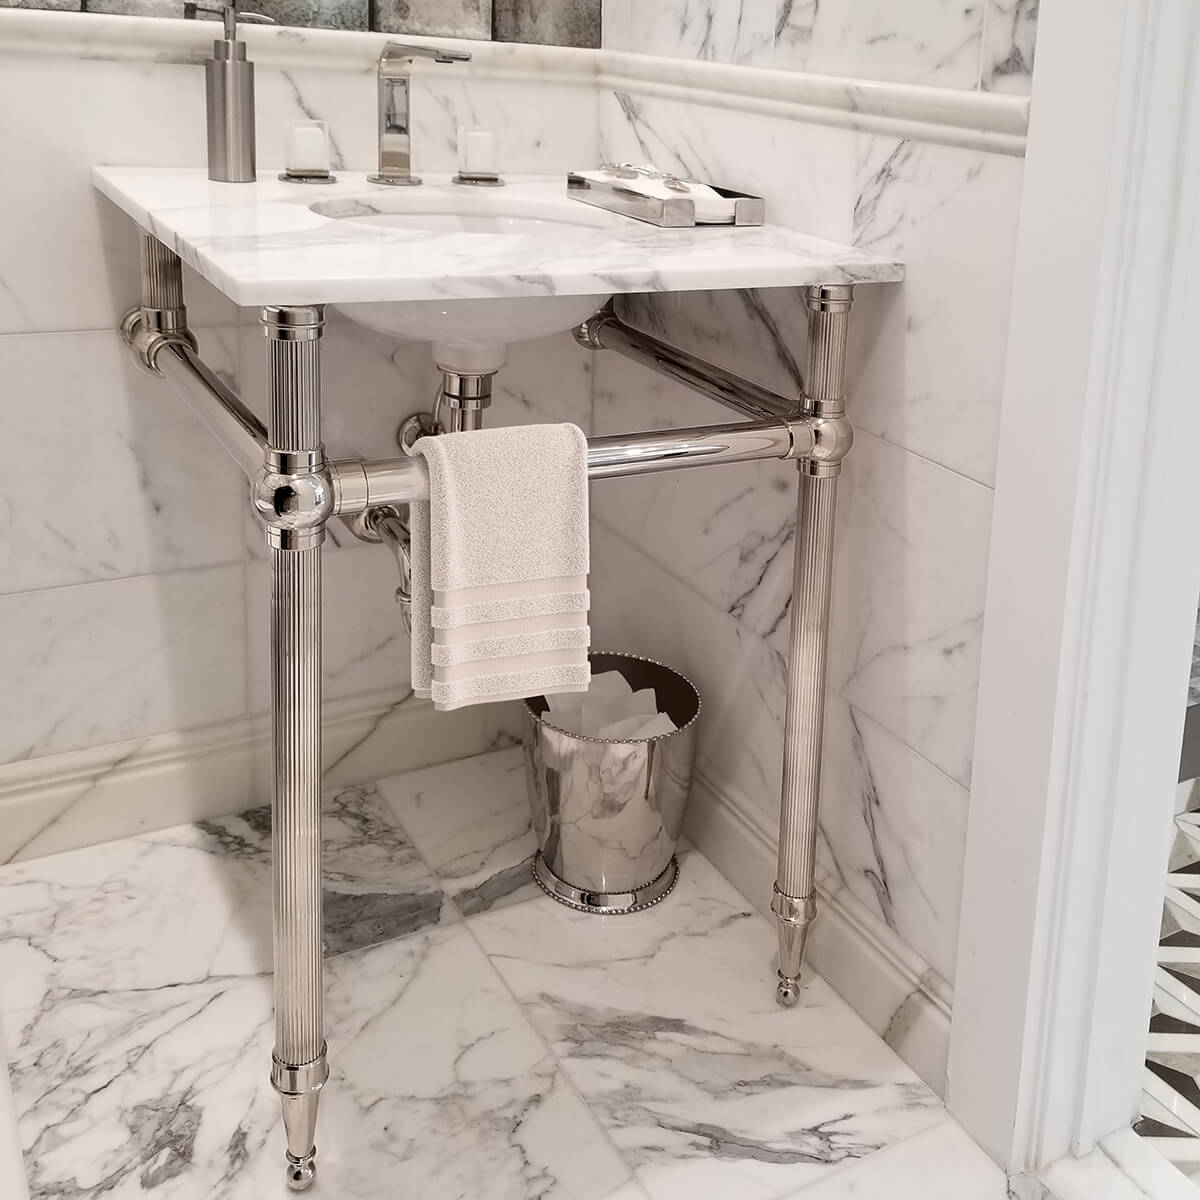 1281a-Atristic-Tile-LS2T-Reeded-in-Marble-Bath